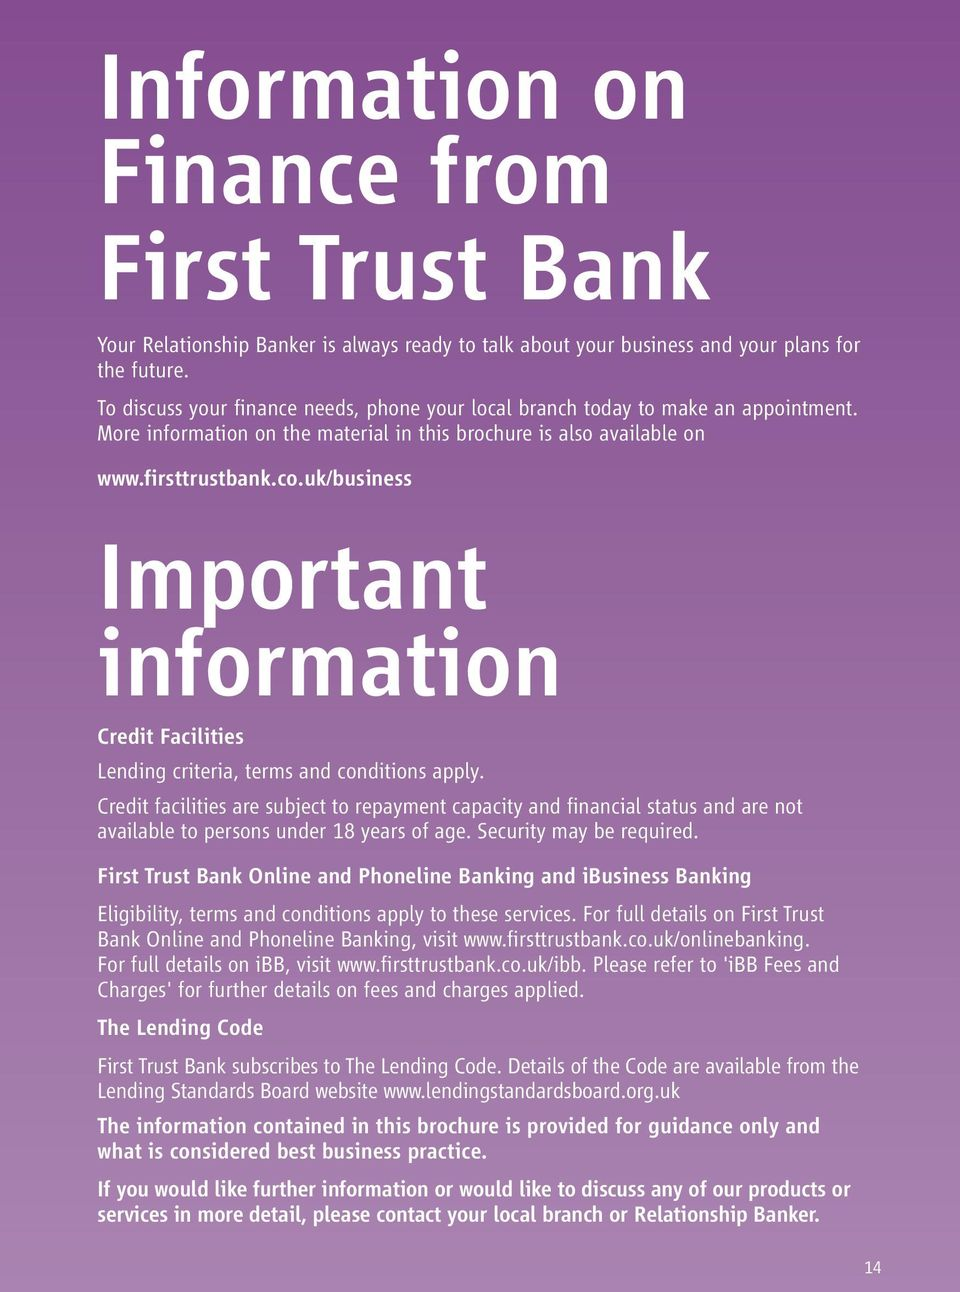 uk/business Important information Credit Facilities Lending criteria, terms and conditions apply.